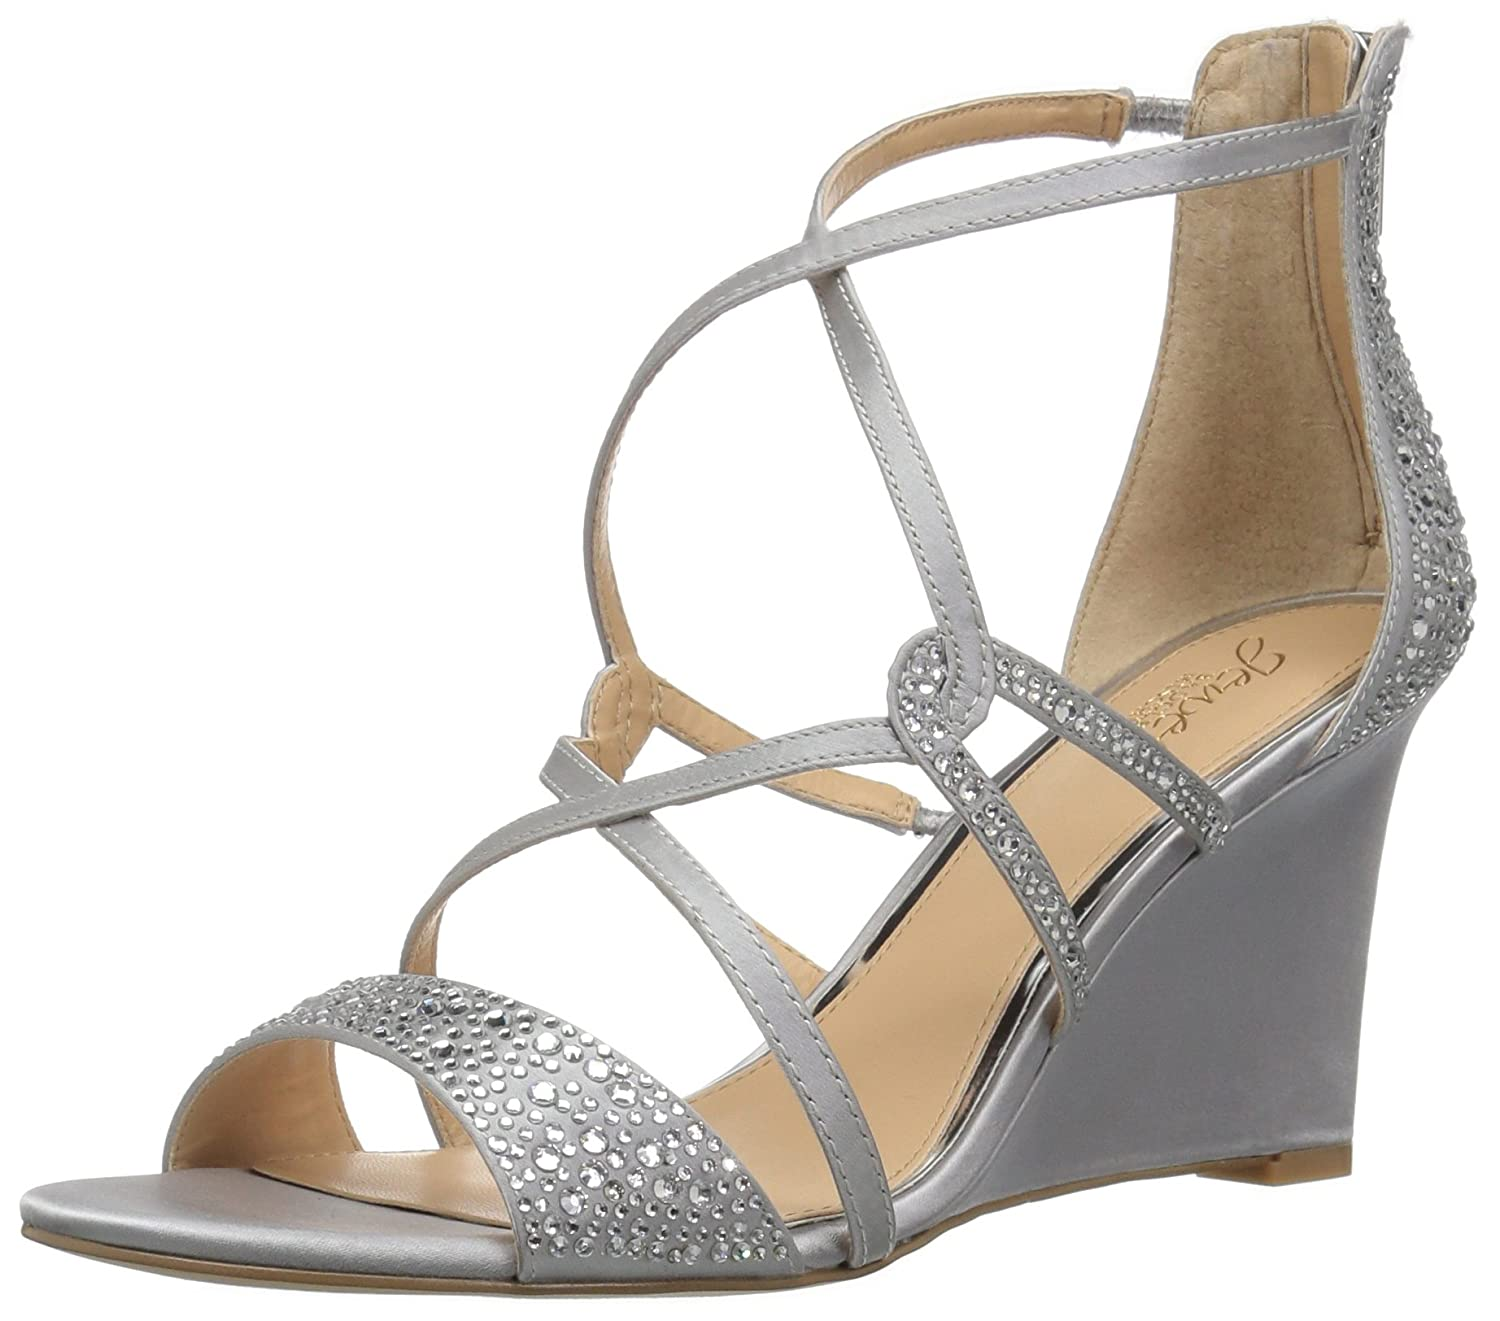 Badgley Mischka Jewel Women's Ally II Wedge Sandal Jewel Badgley Mischka JW2232B